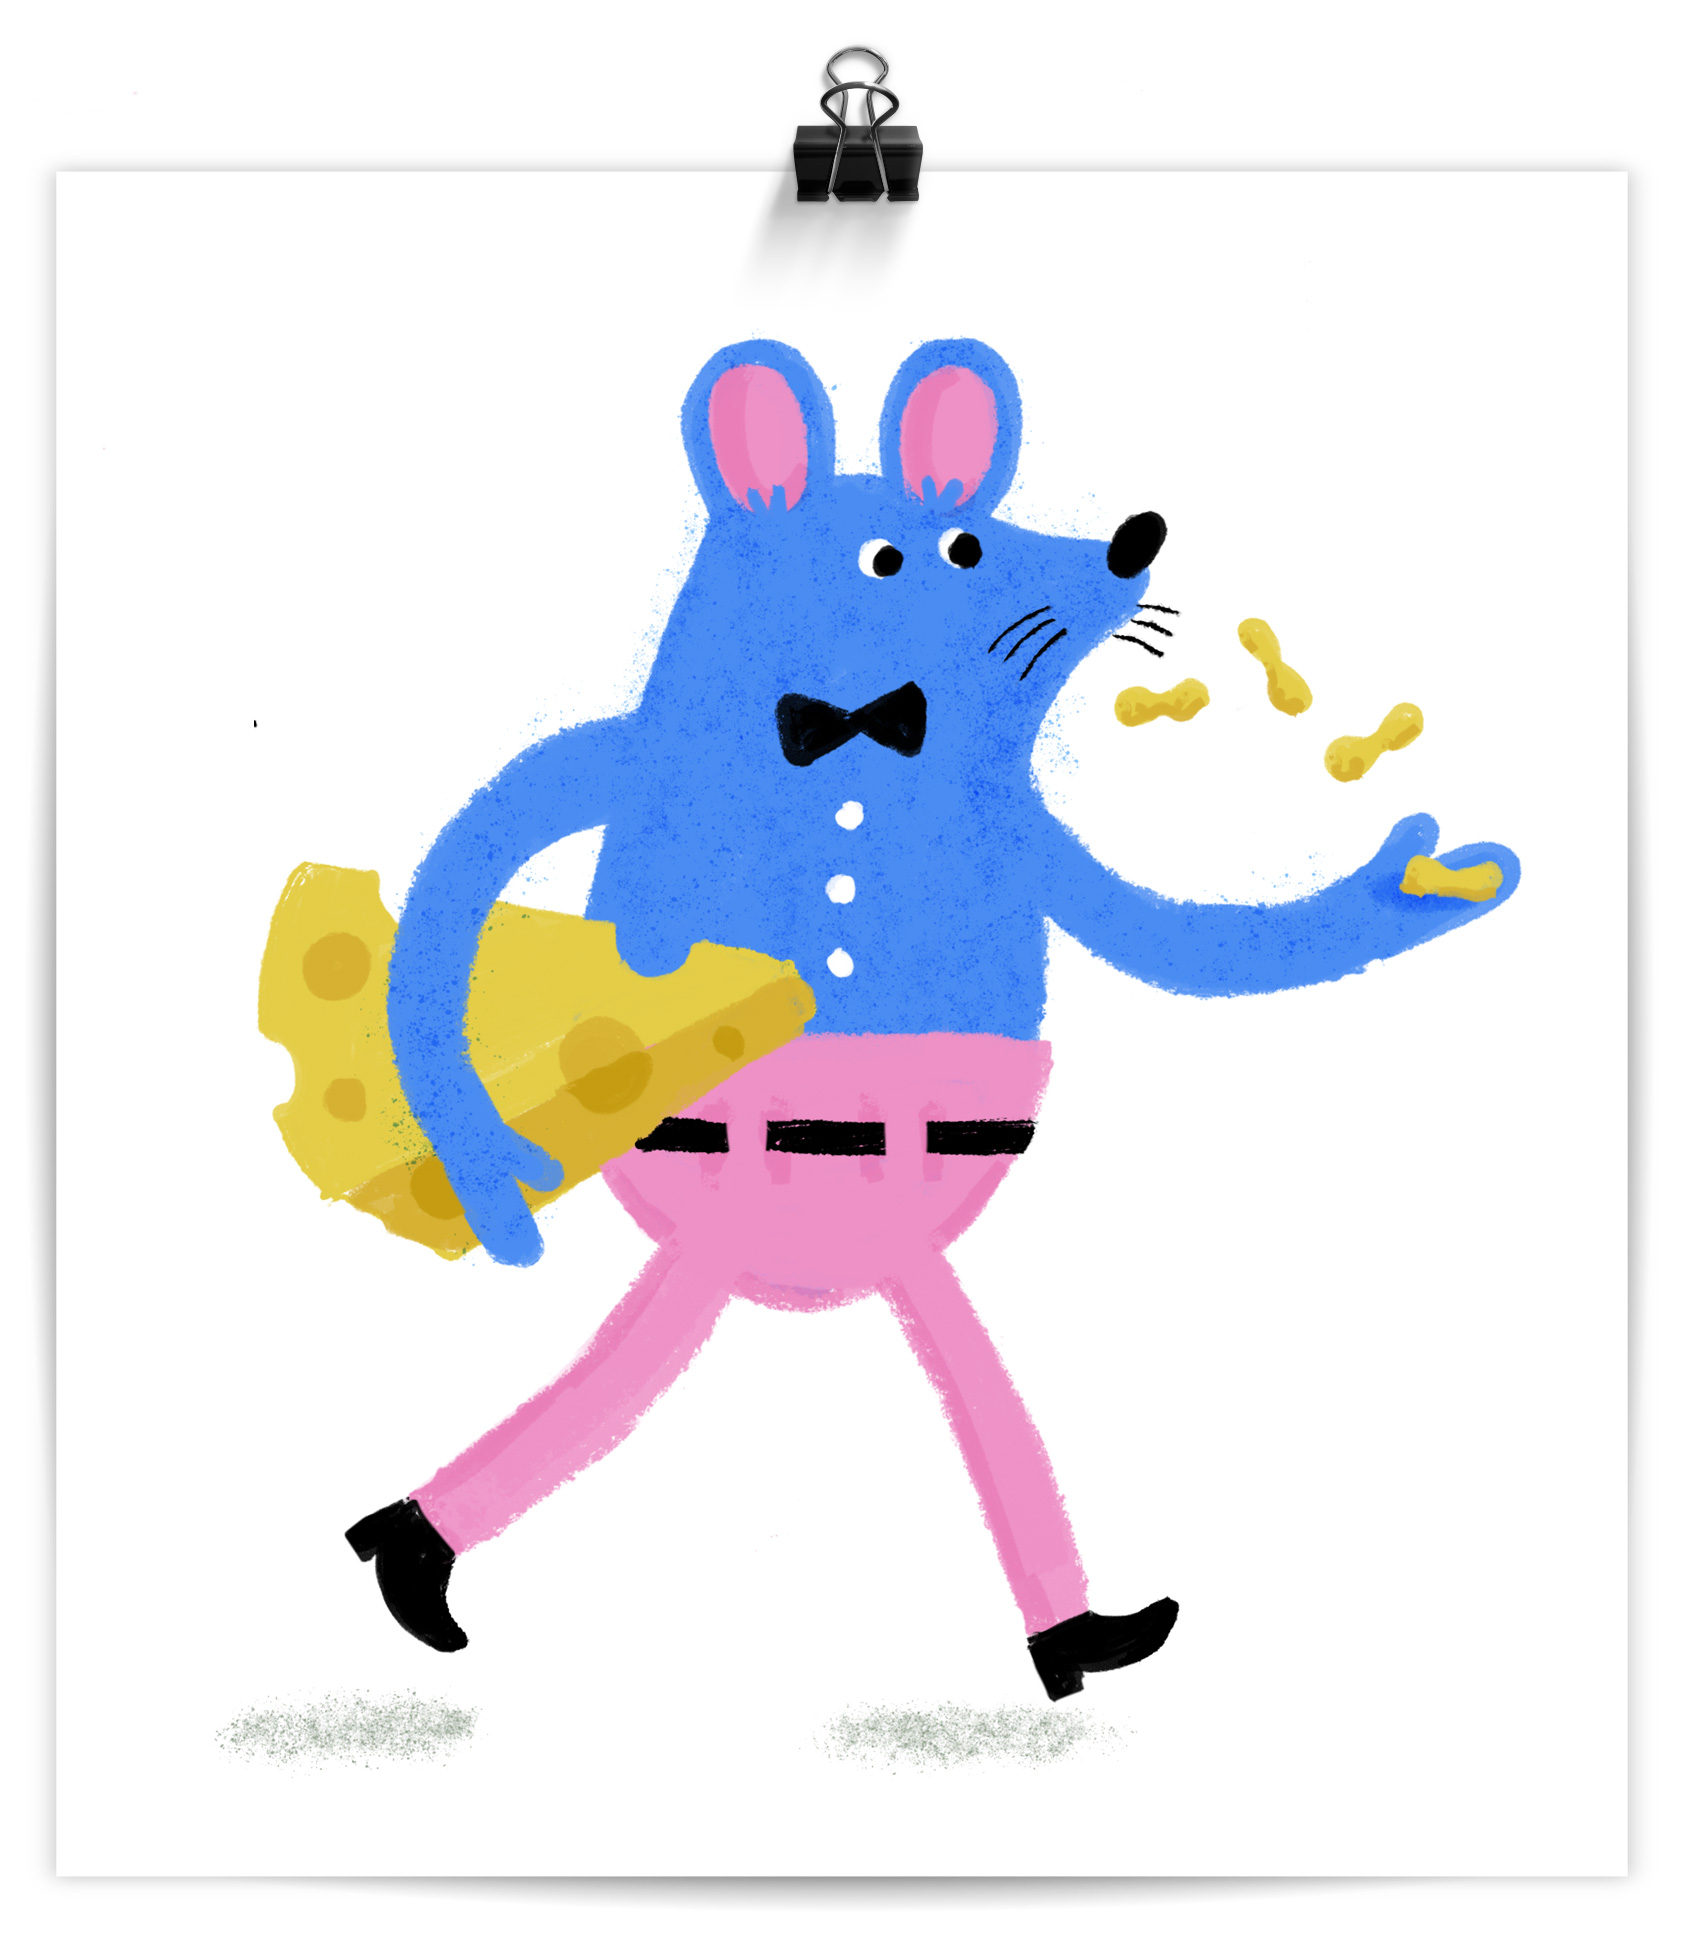 a blue mouse in pink pants carrying some cheese and eating peanuts